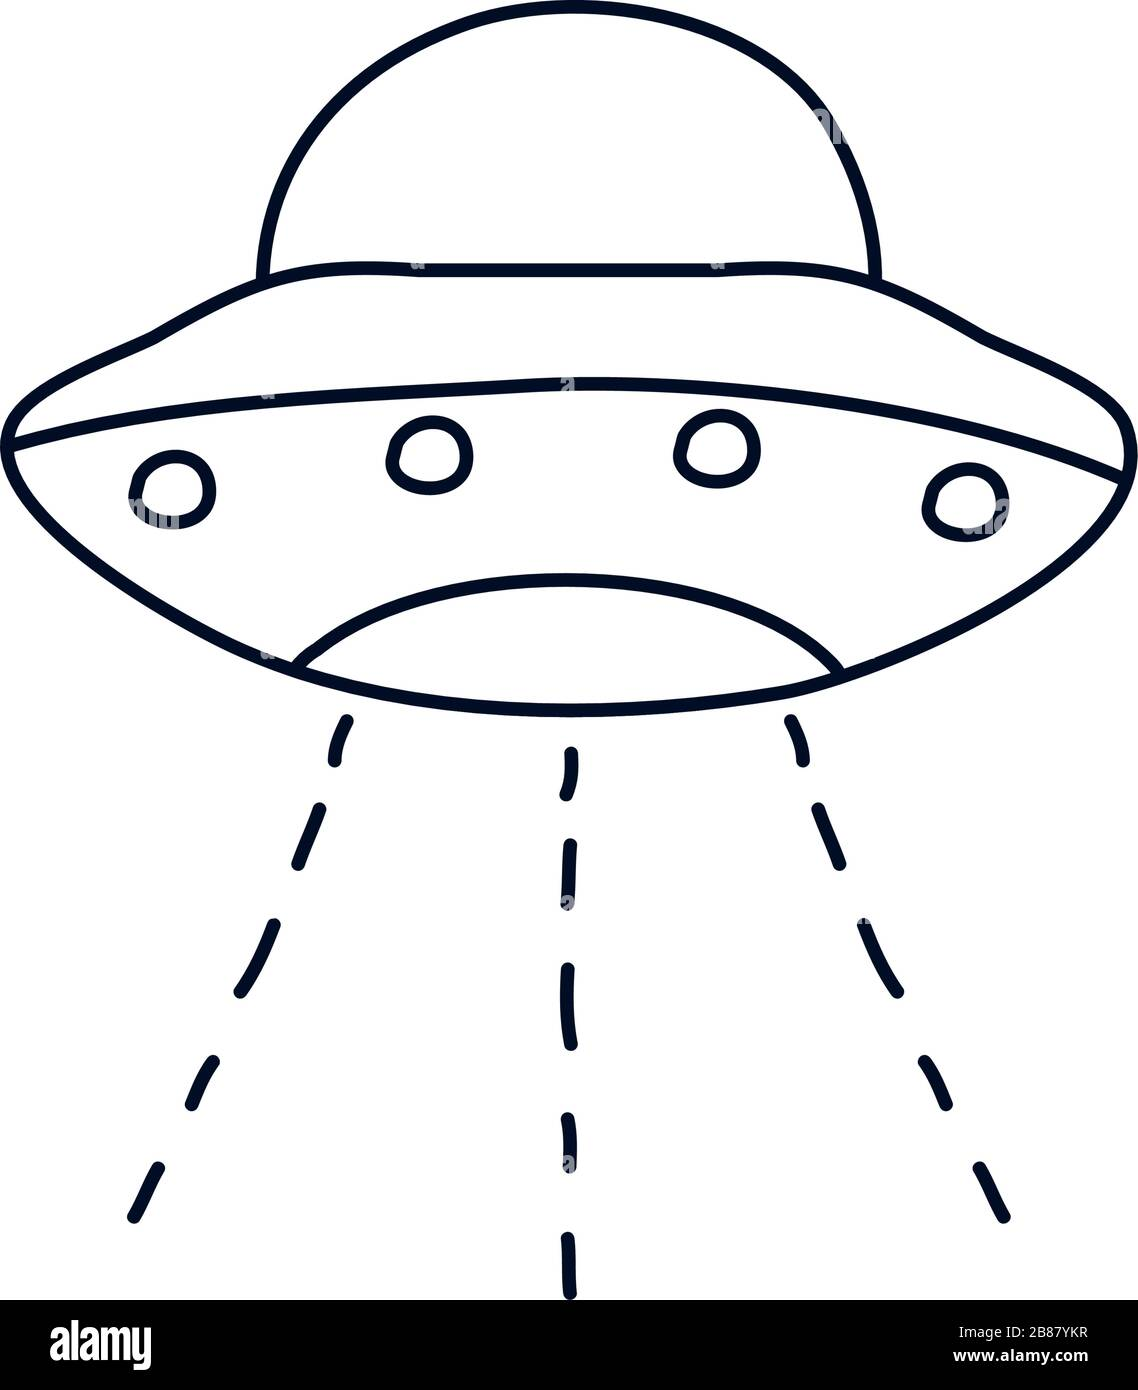 Flying Saucer Icon Over White Background Minimalist Tattoo Concept Line Style Vector Illustration Stock Vector Image Art Alamy